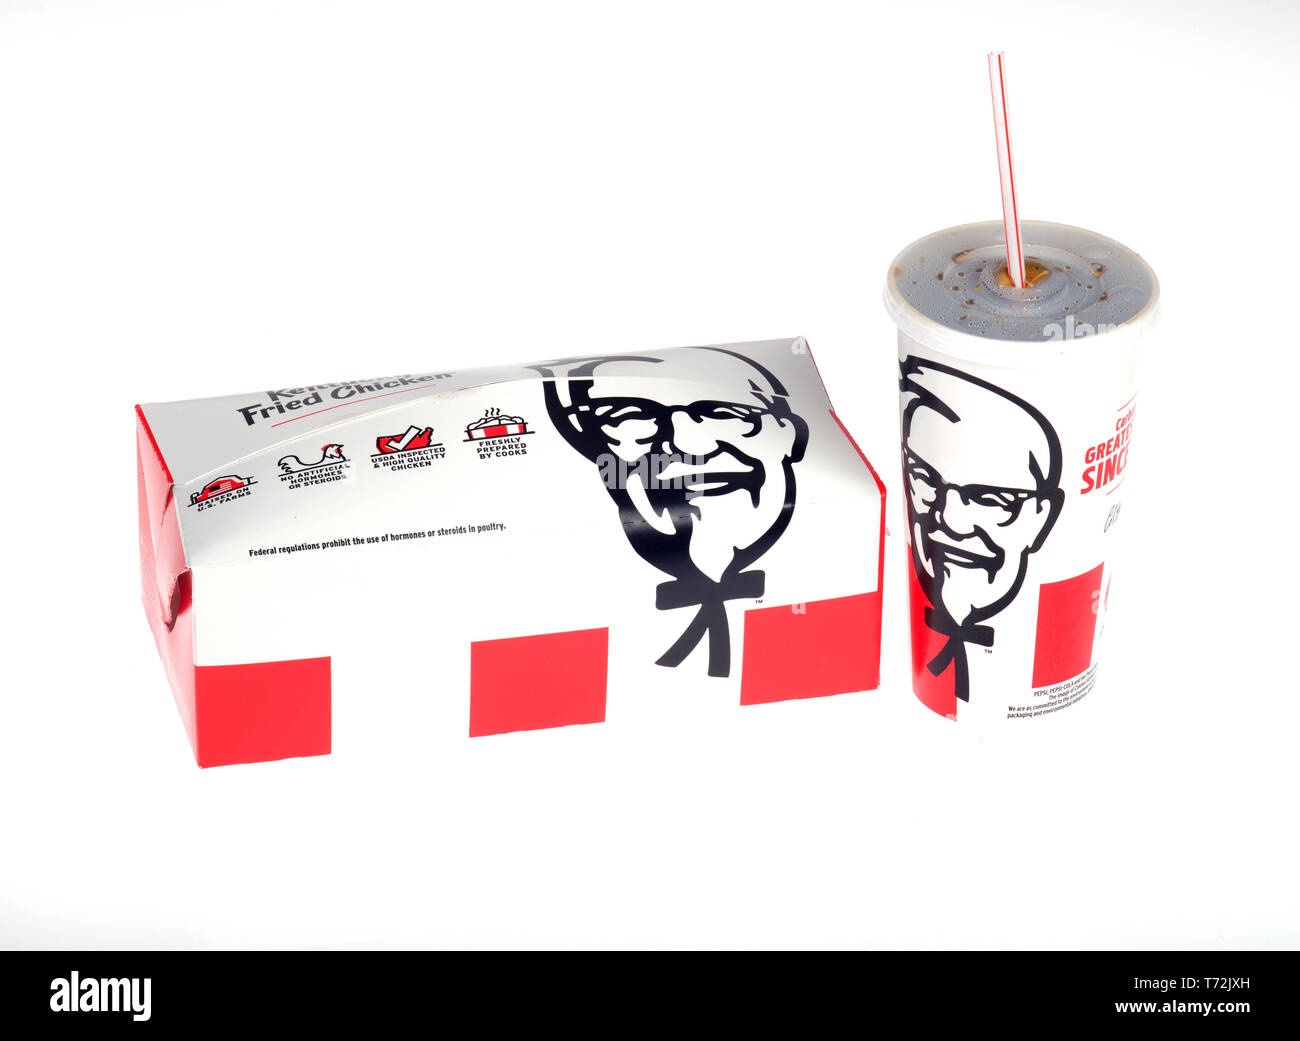 KFC Fill Up meal box with soda cup - Stock Image